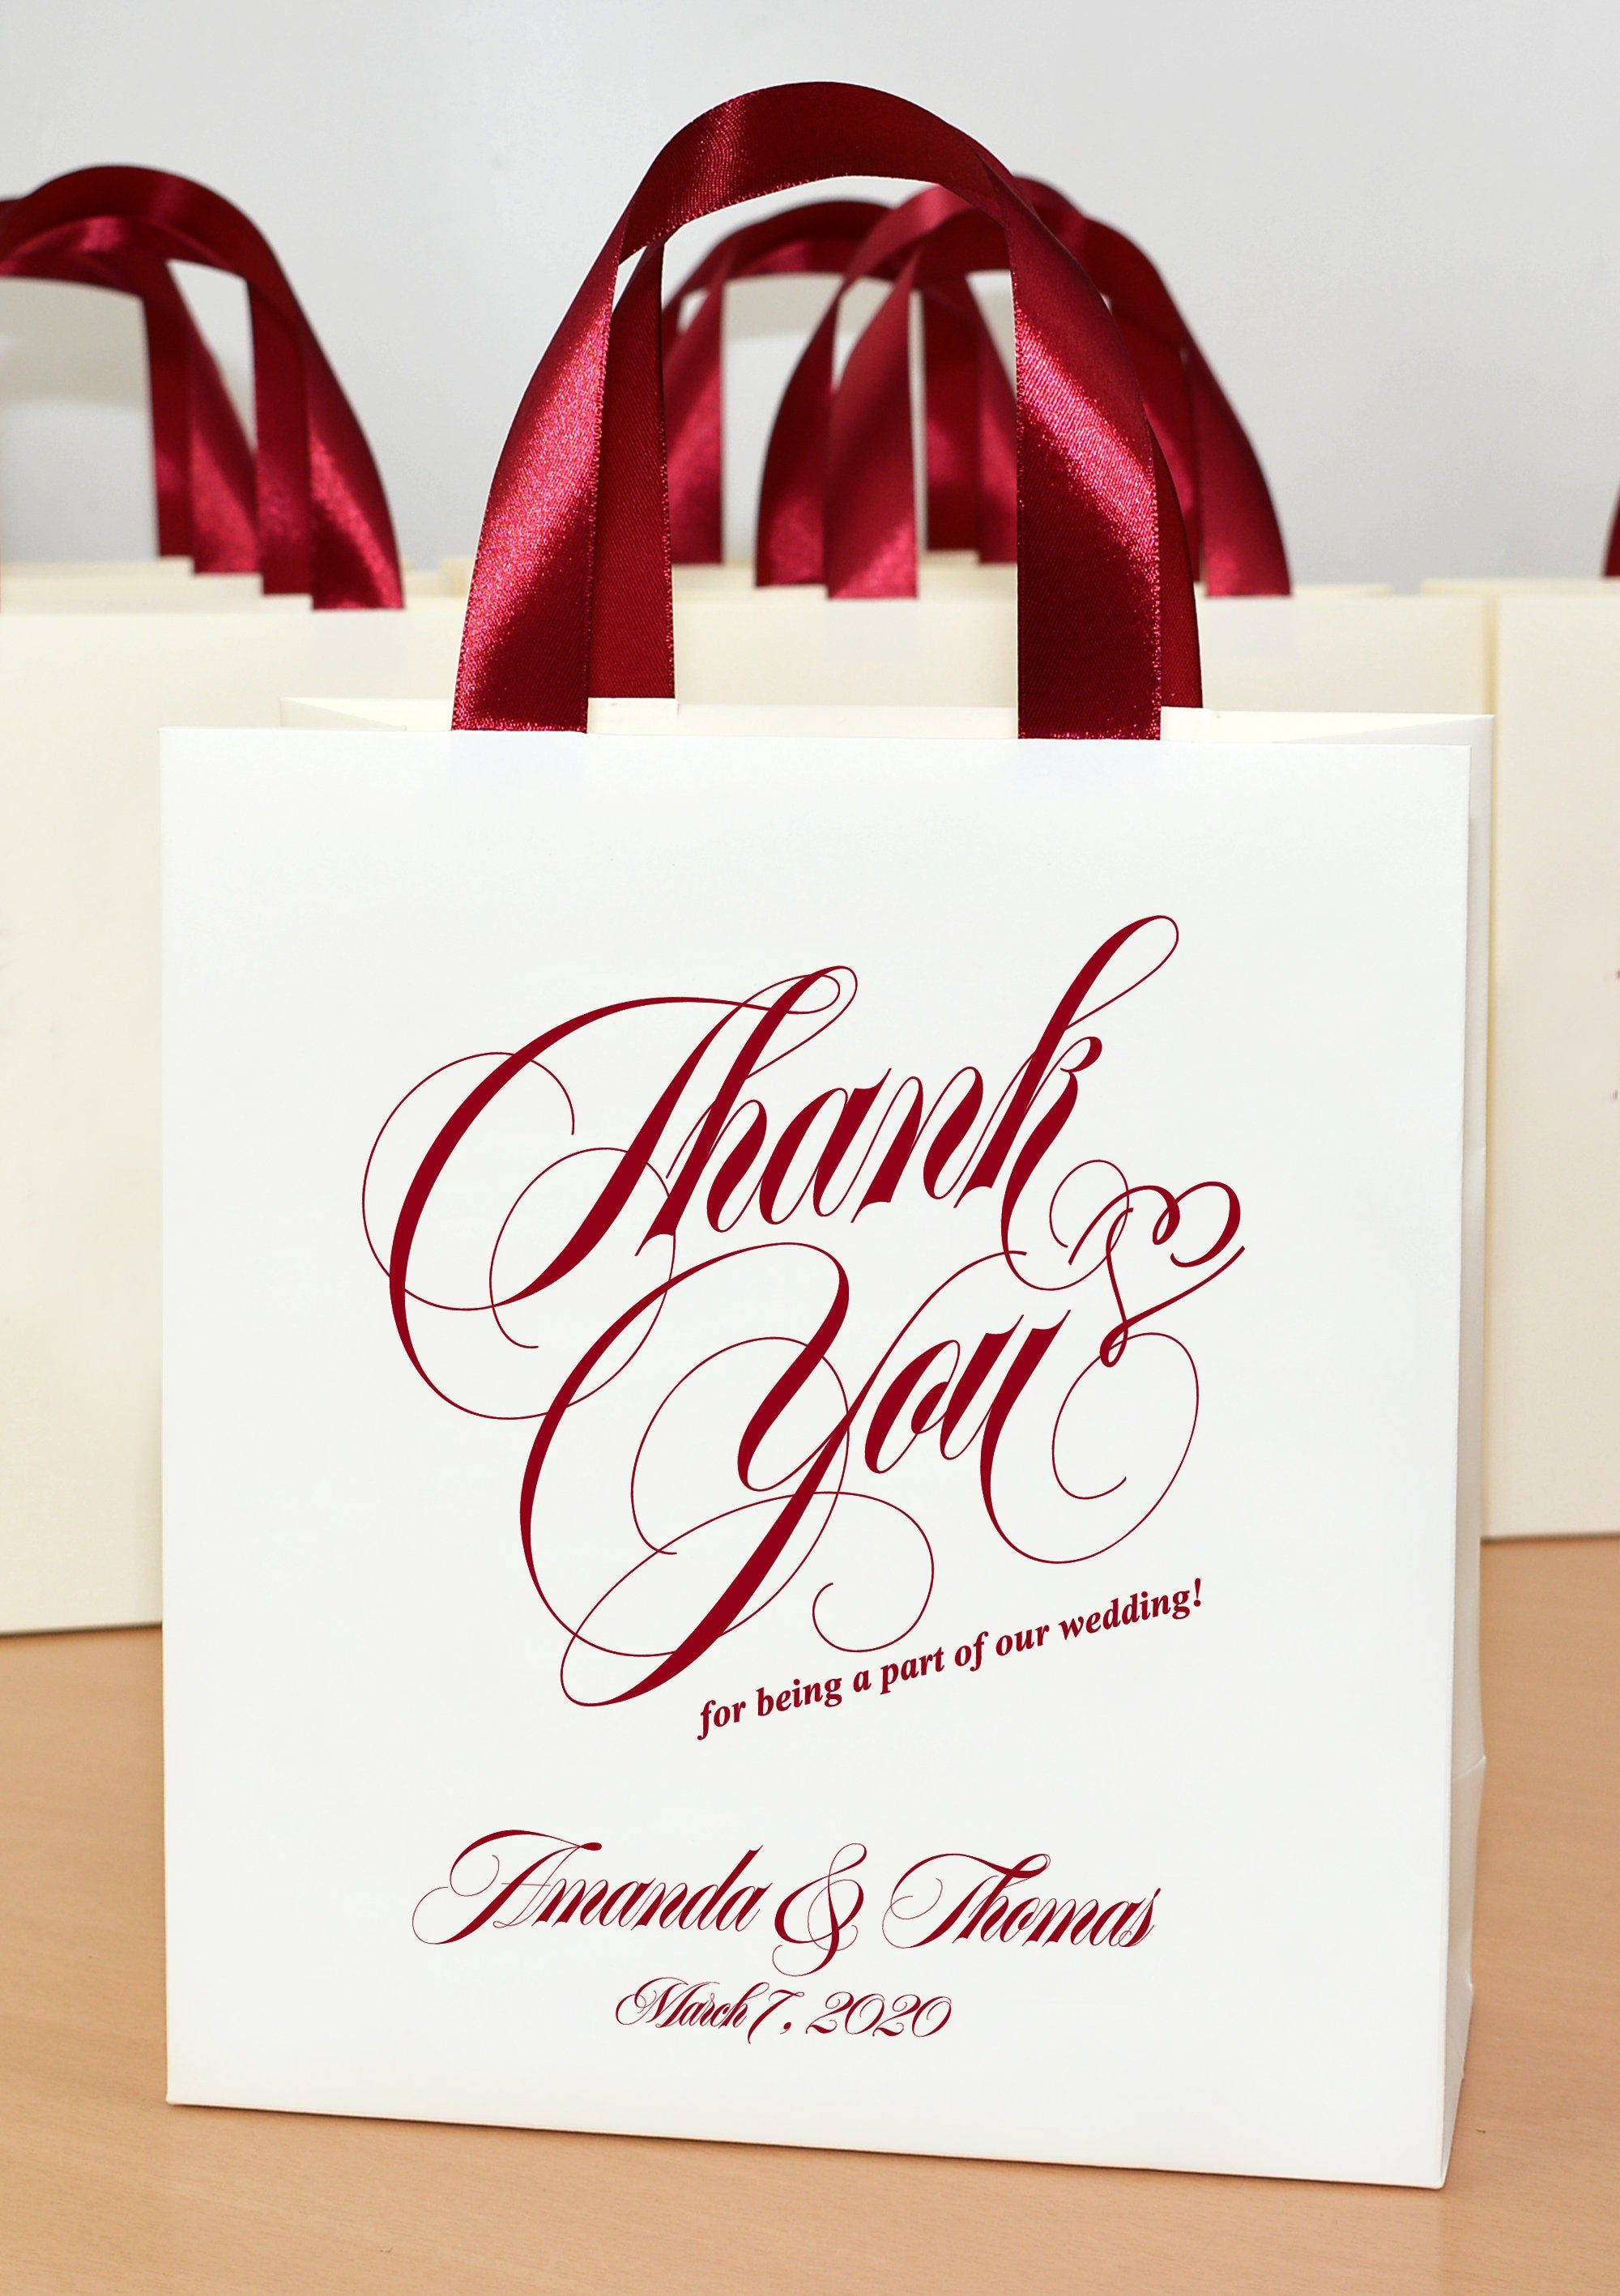 25 Coral Wedding Welcome Bags with satin ribbon handles and your names Elegant Personalized wedding Thank You favors for your guests